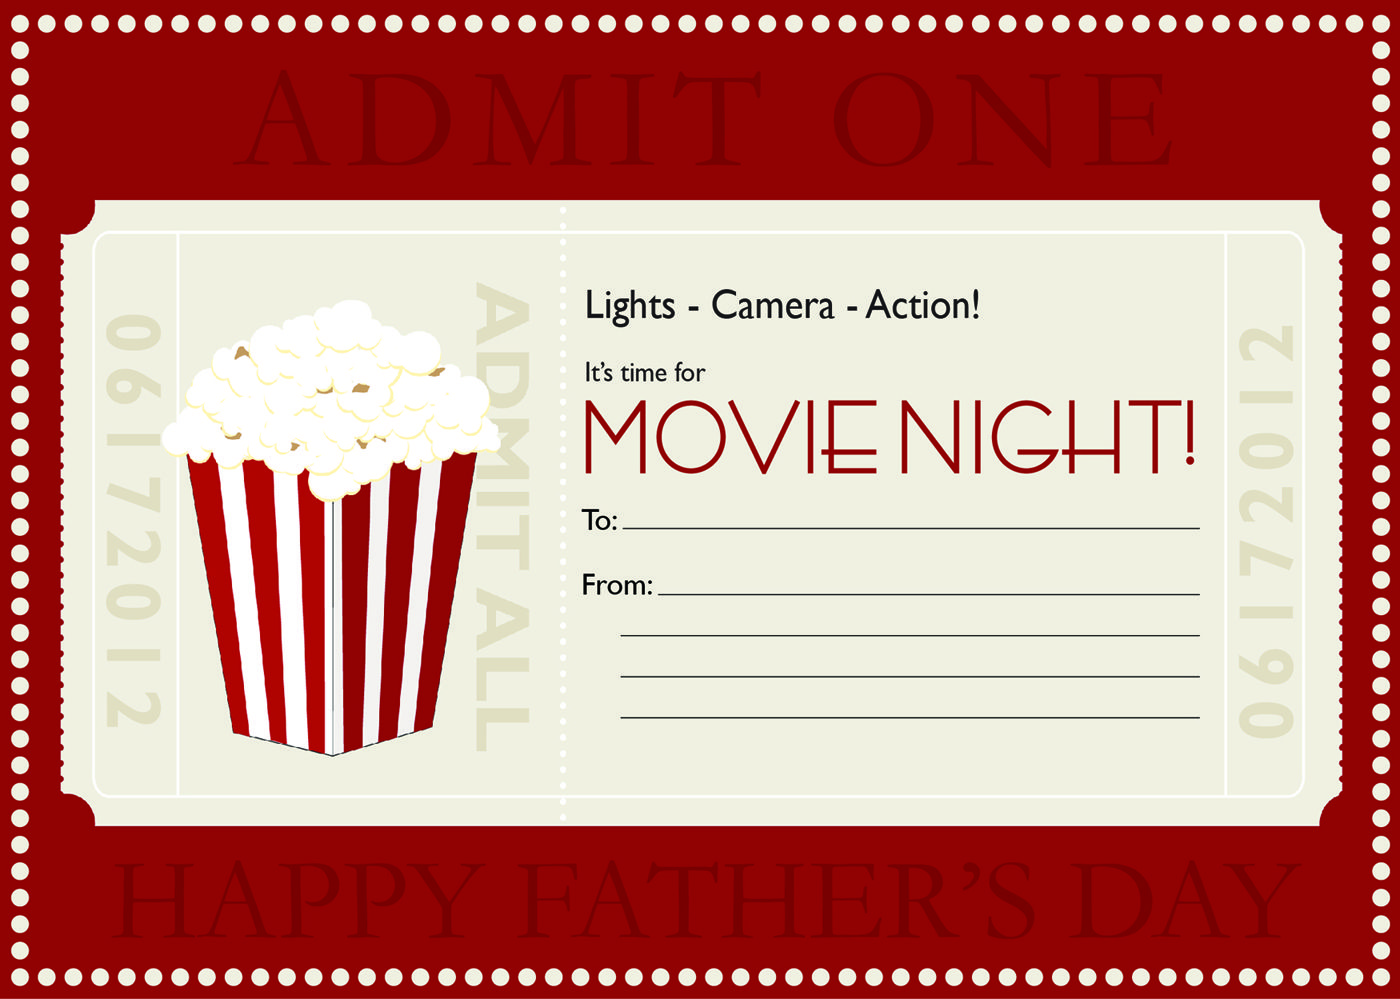 date night gift certificate templates - dinner and a movie gift basket for dinner and a movie